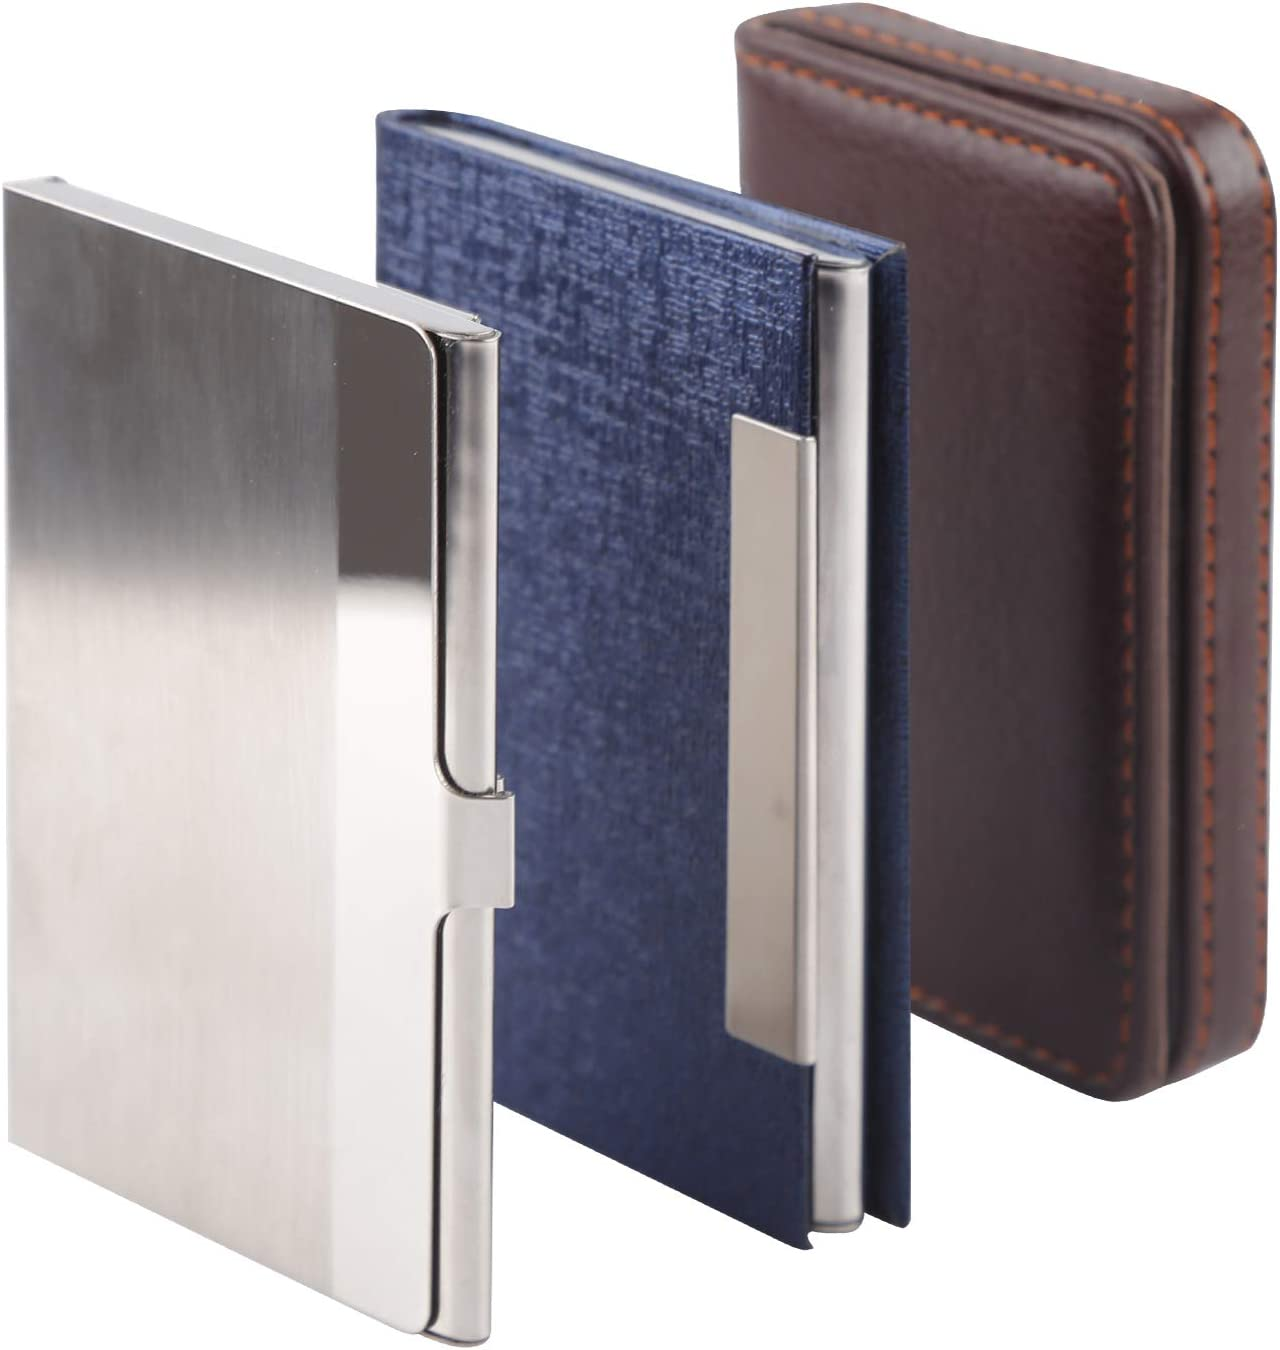 Vetoo Professional Business Name Card Holder, Stainless Steel Metal Slim  Business Card Case, Luxury PU Leather Multi Business Card Wallet for Women  &